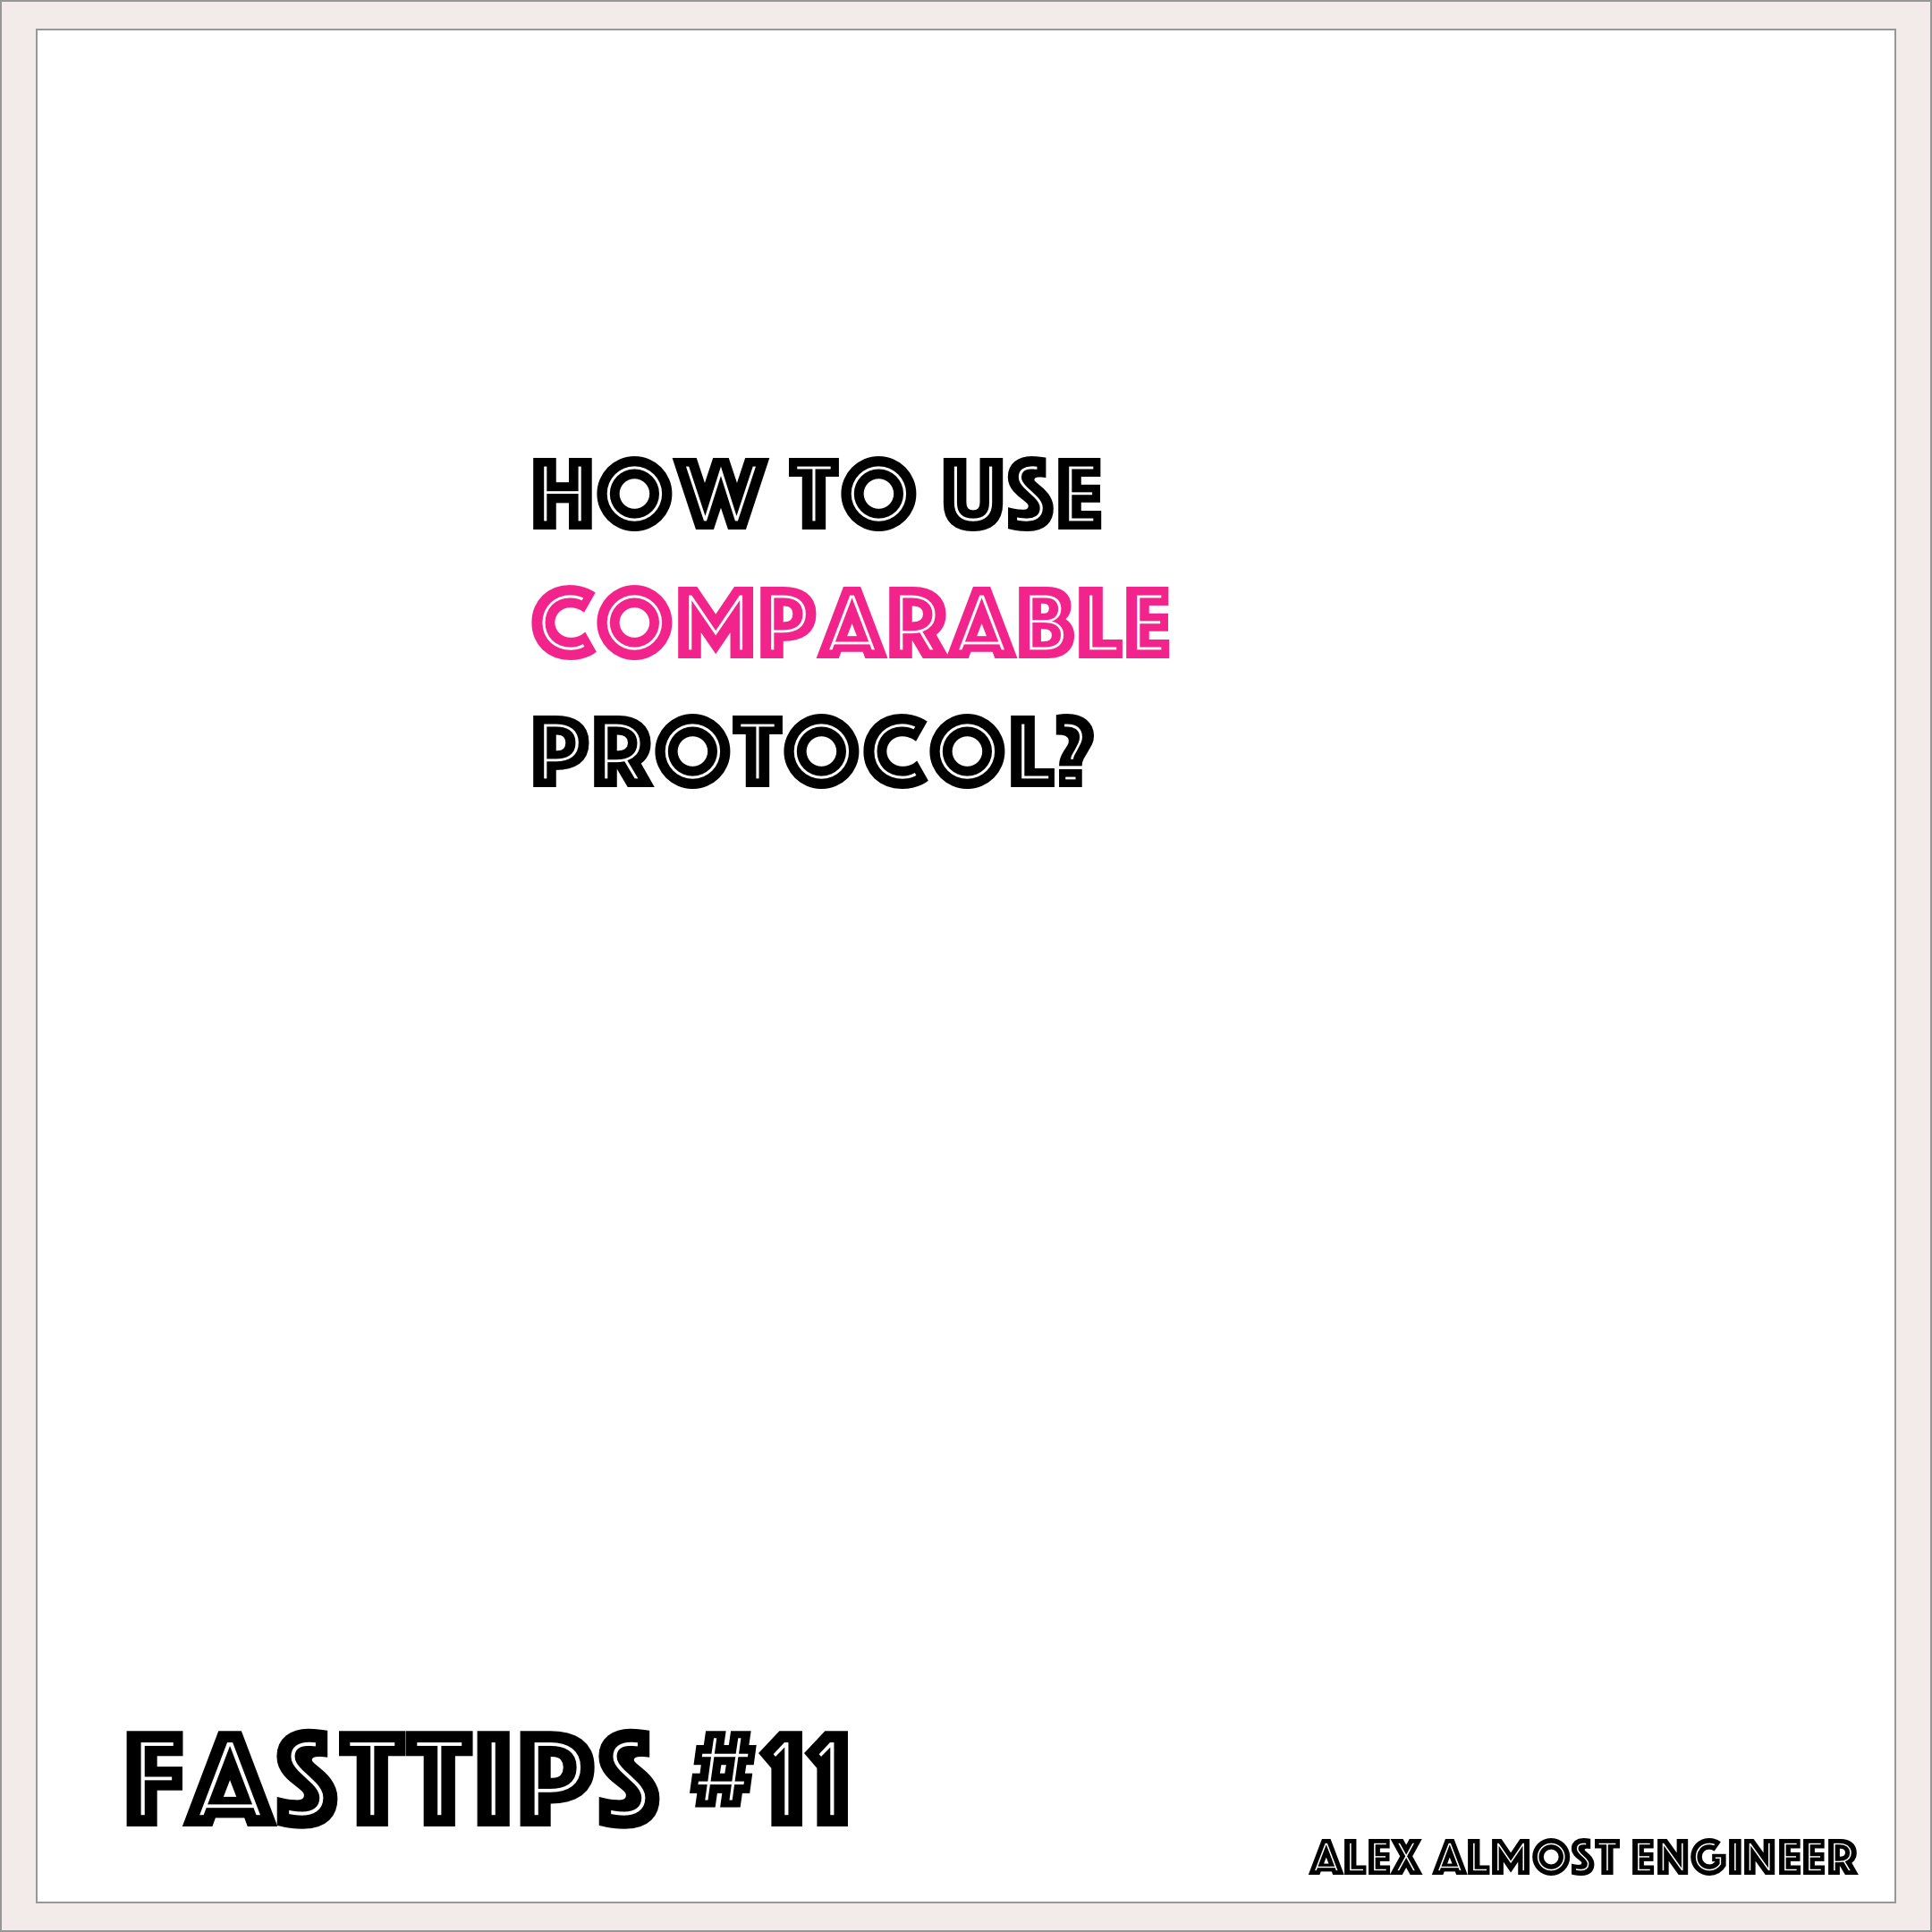 How to use Comparable protocol